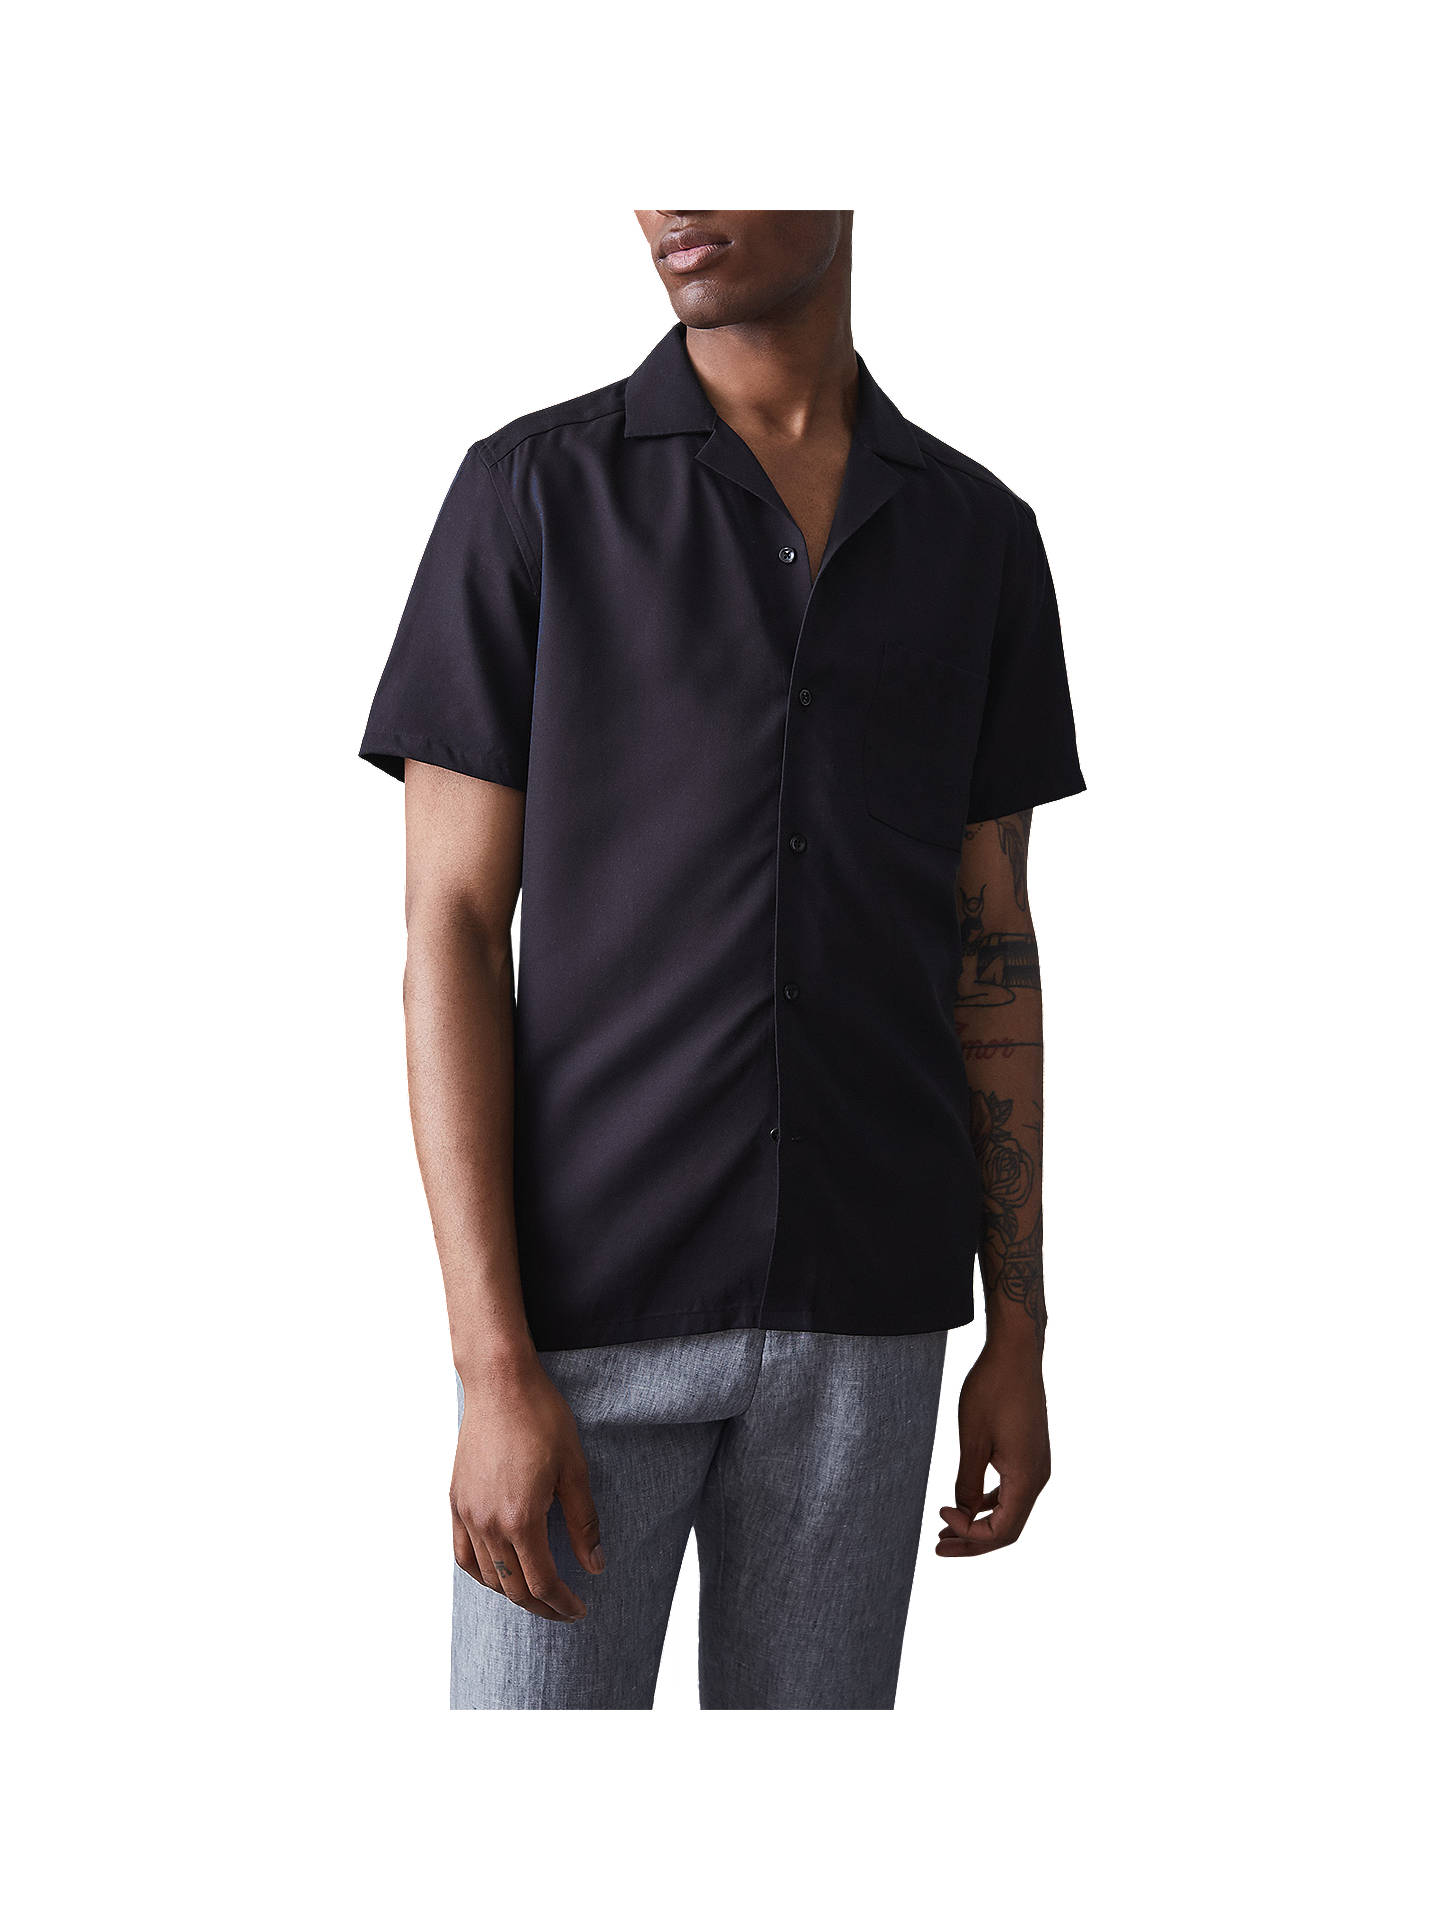 BuyReiss Haydon Cuban Collar Short Sleeve Shirt, Navy, S Online at johnlewis.com